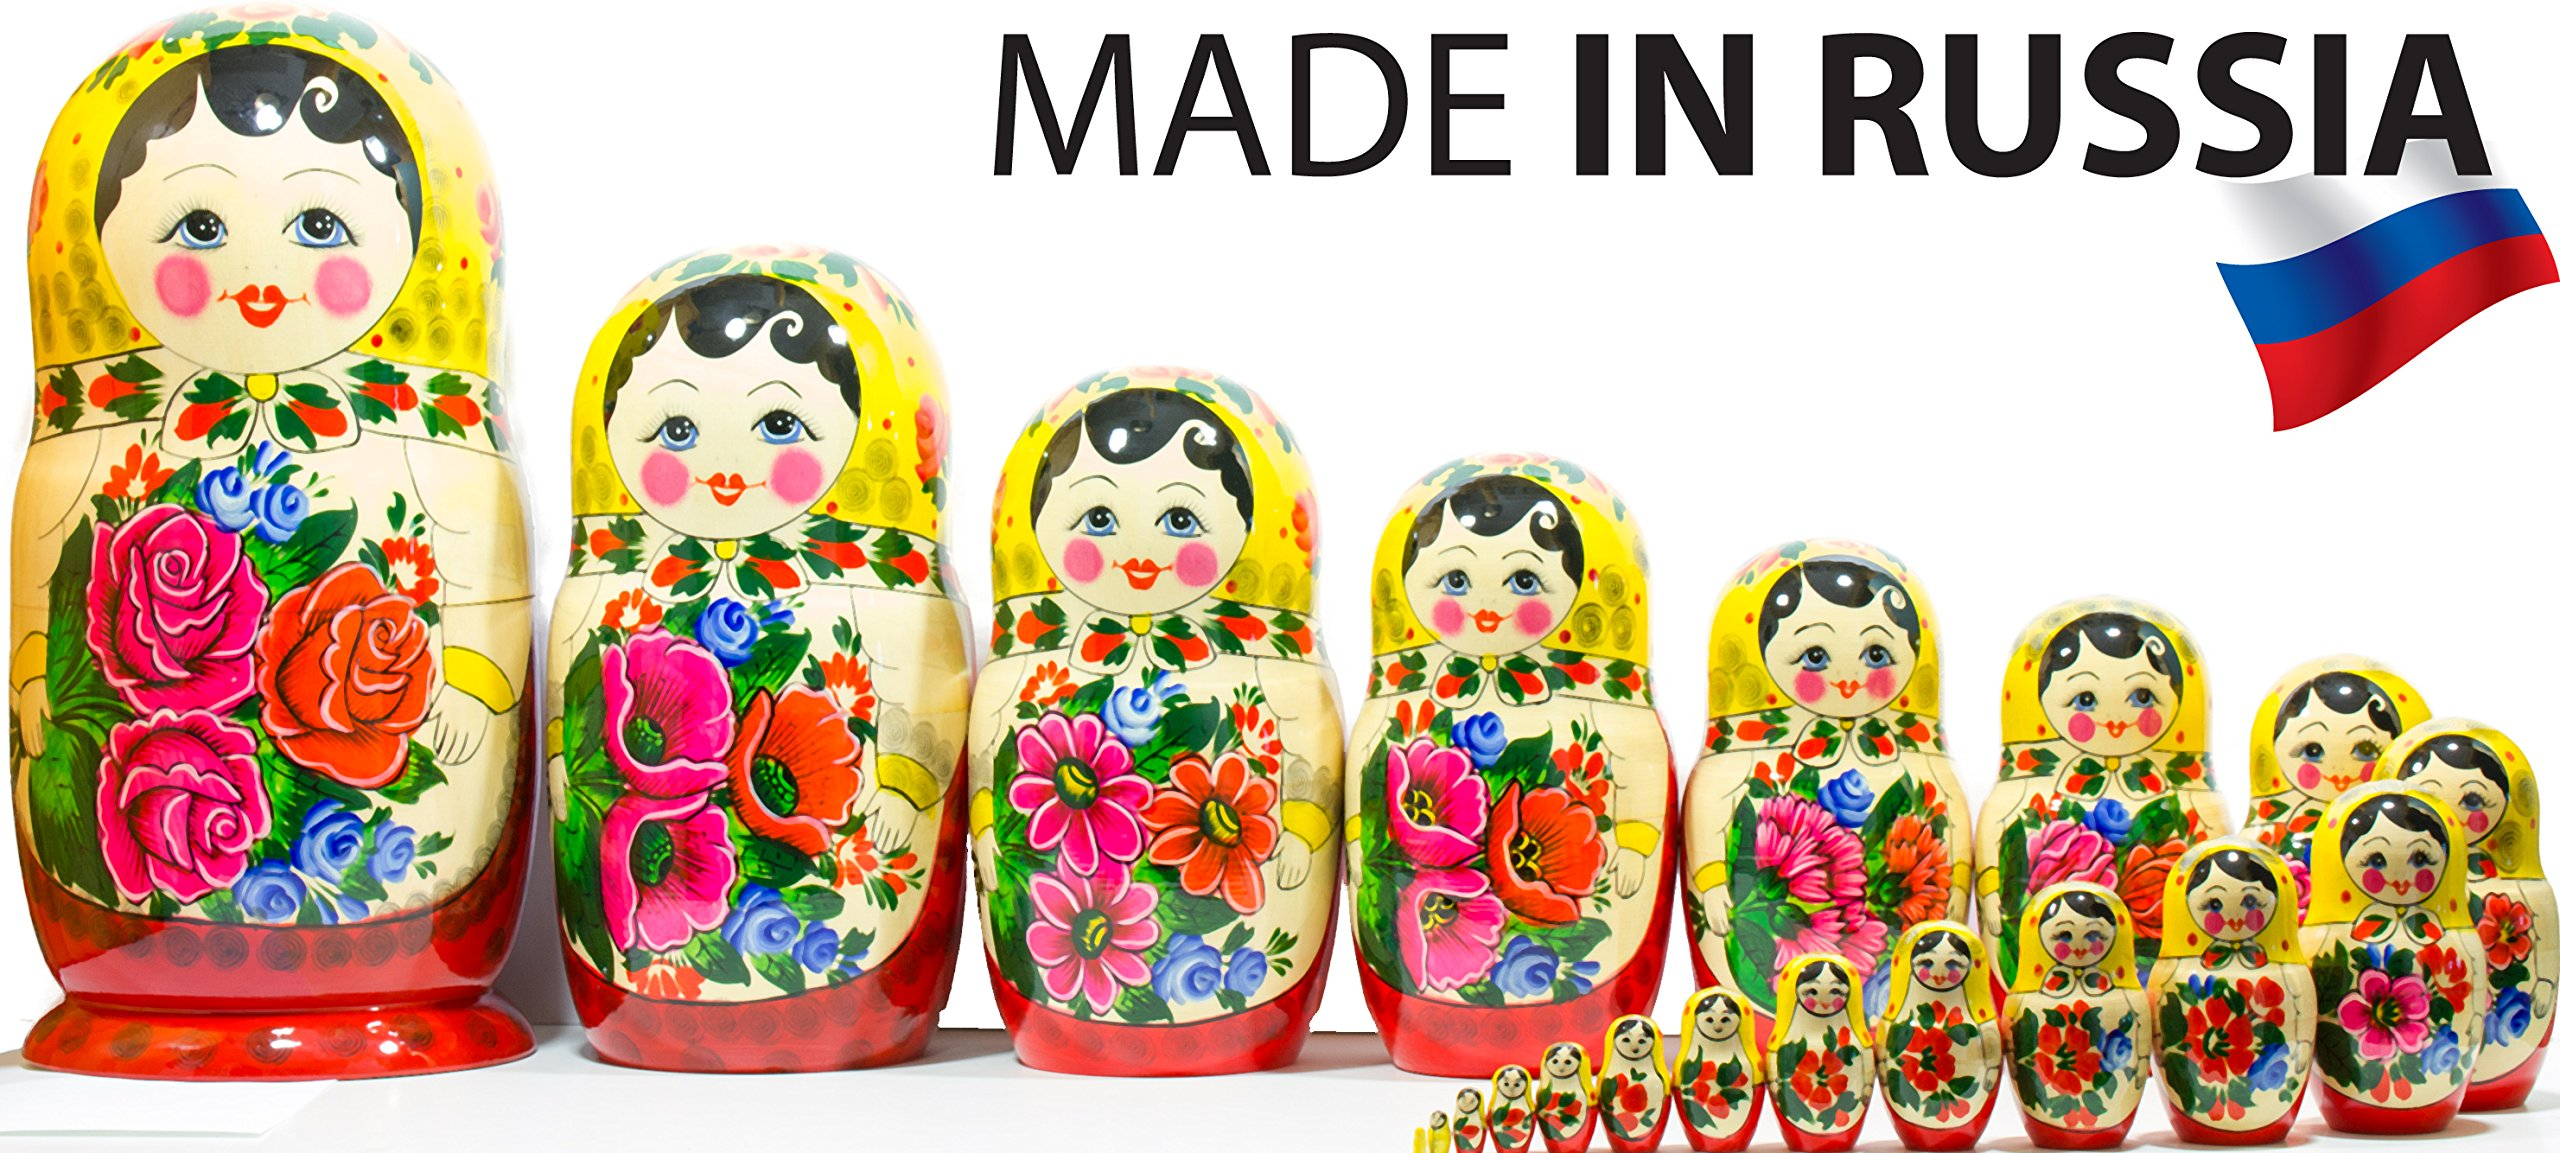 Russian Nesting Doll -Semenovo - Hand Painted in Russia - 6 Color|Size Variations - Wooden Decoration Gift Doll - Traditional Matryoshka Babushka (14``(20 Dolls in 1), Yellow - Red) by craftsfromrussia (Image #1)